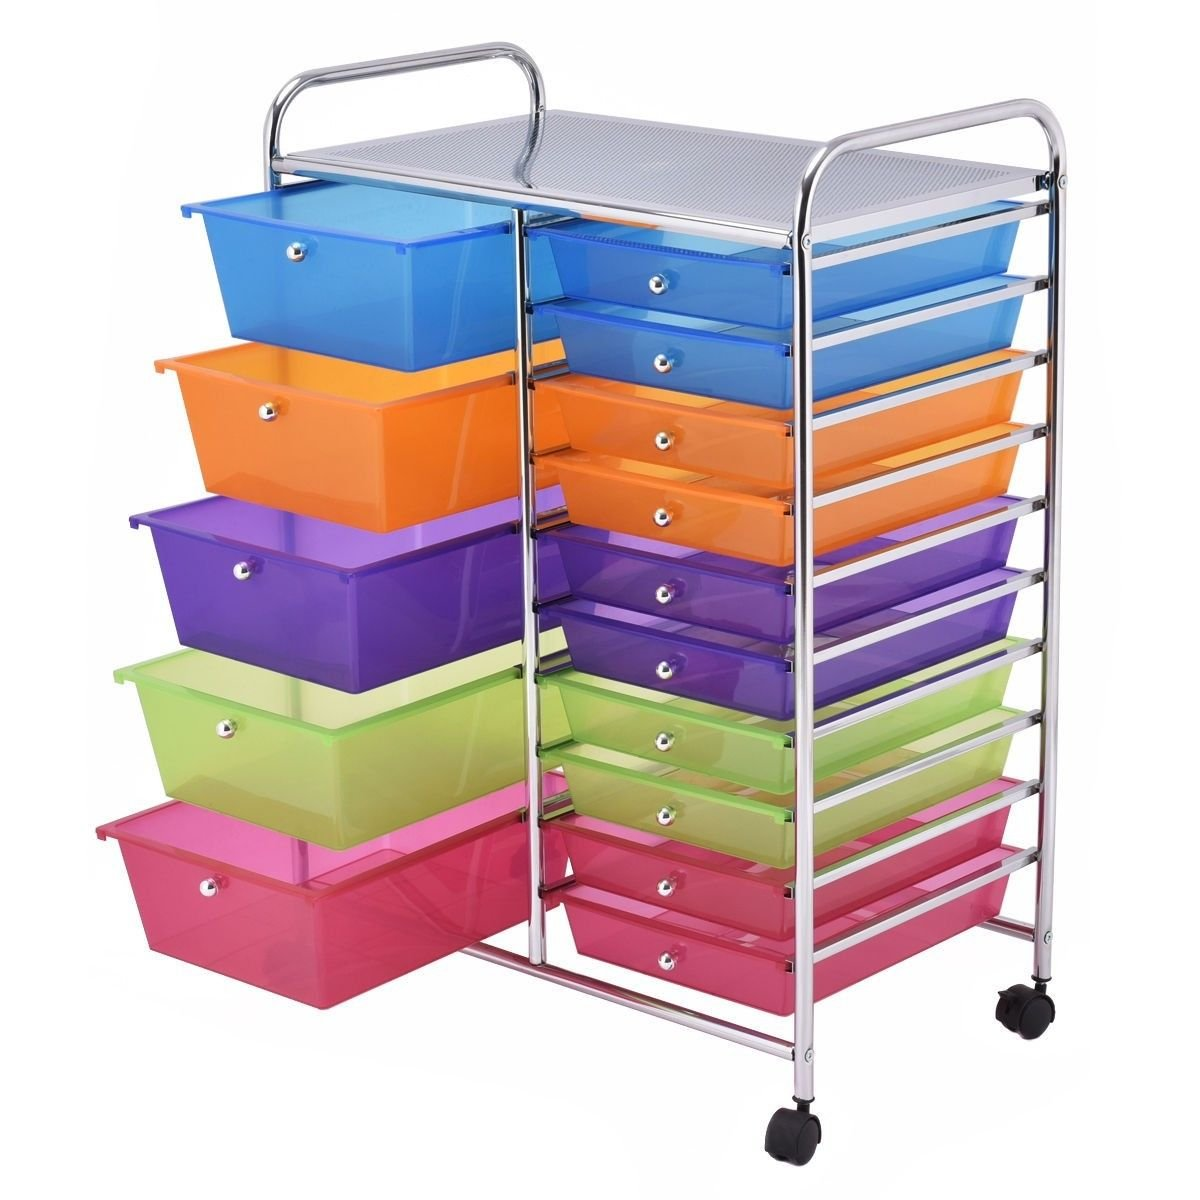 Lucky119 Rolling Portable Organizer Storage Cart Plastic Bins for Kitchen Office 15 Drawer